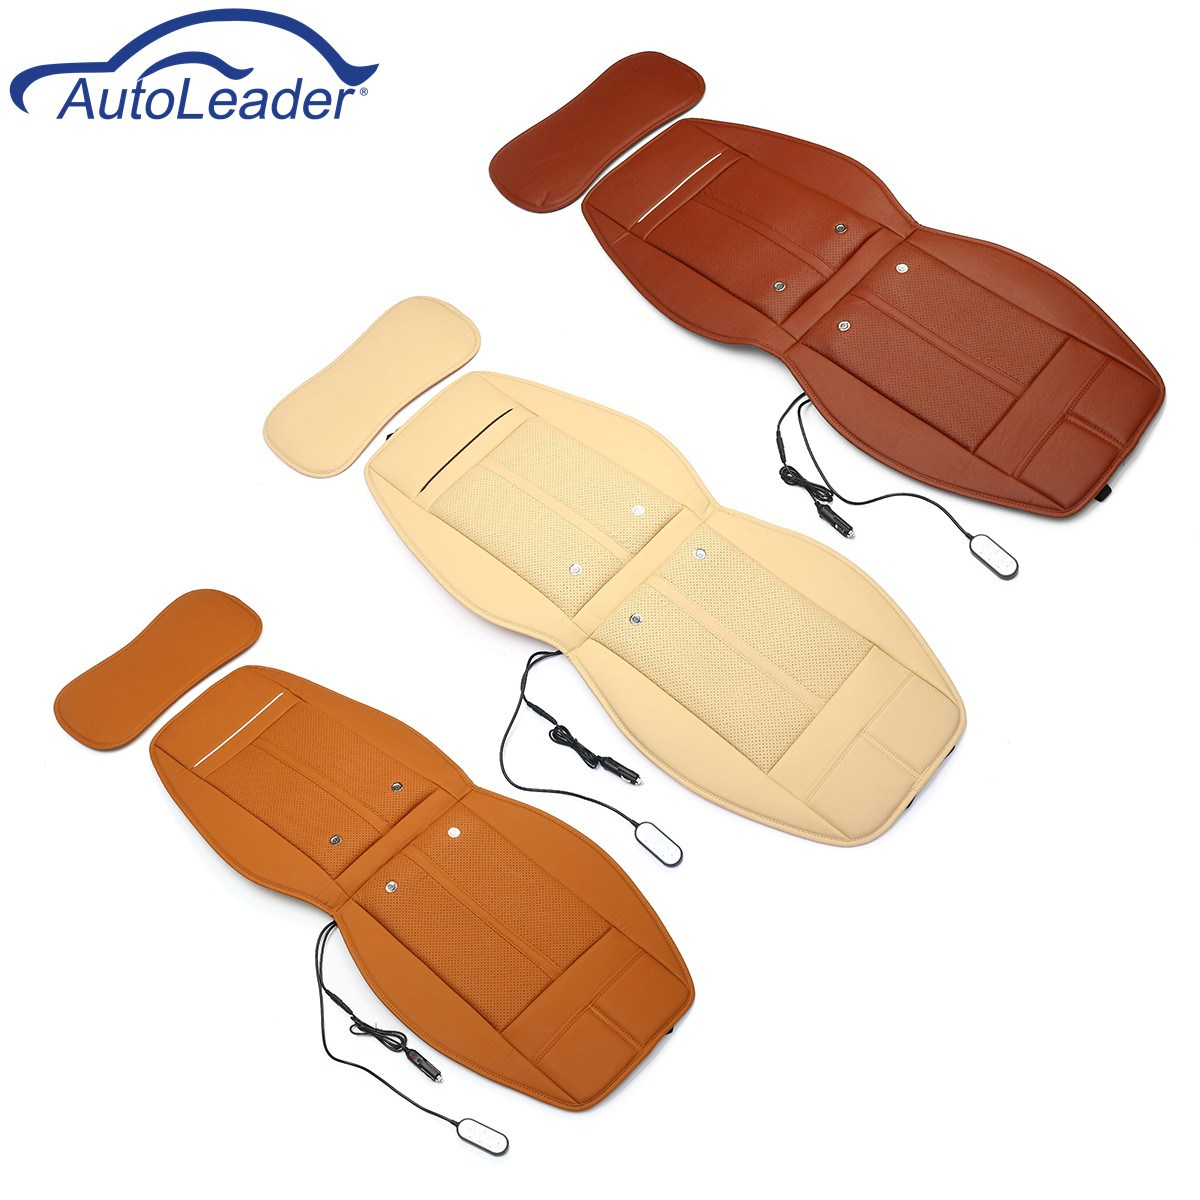 3 In 1 Car Auto Seat Cushion Cooling Heated Massage Chair Seat Cover Cushion Universal 12V Electric Heated Seat Pads